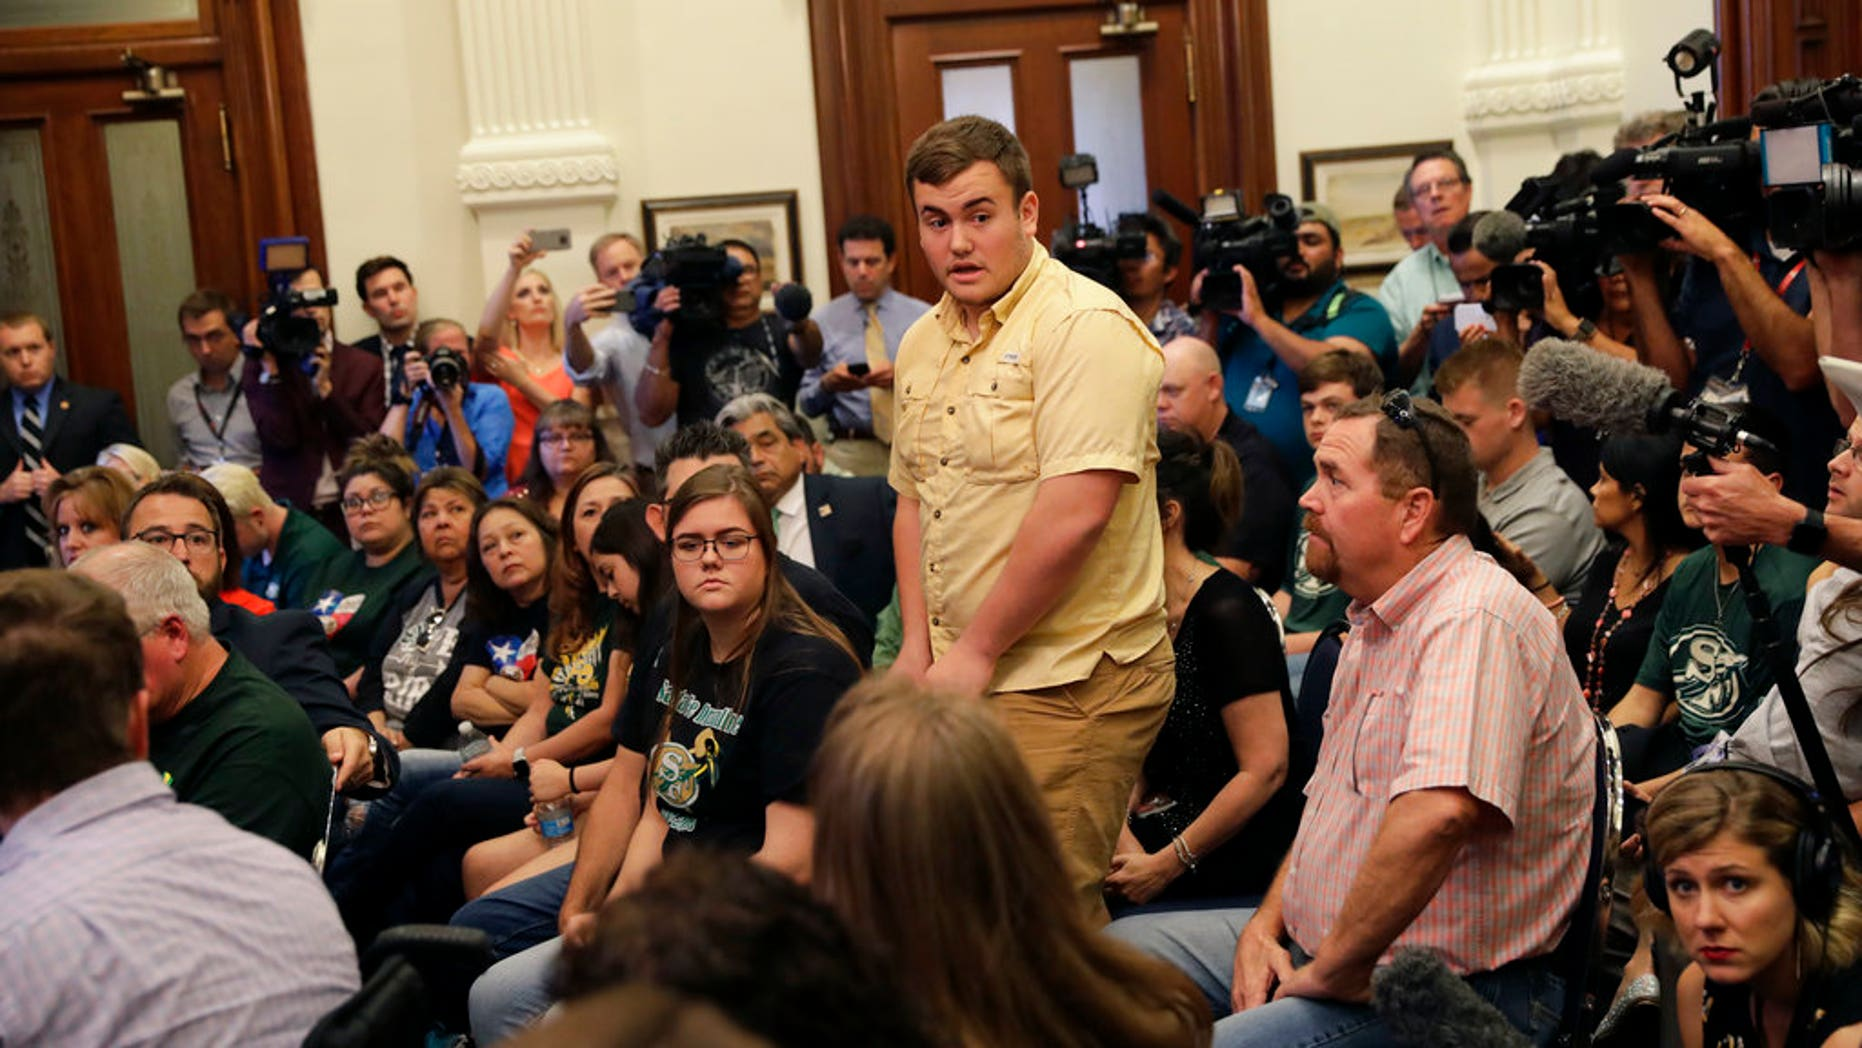 Tyler Morrison, center, a student at Santa Fe High School in Santa Fe, Texas, speaks during a roundtable discussion on gun violence, in Austin, Texas, May 24, 2018.